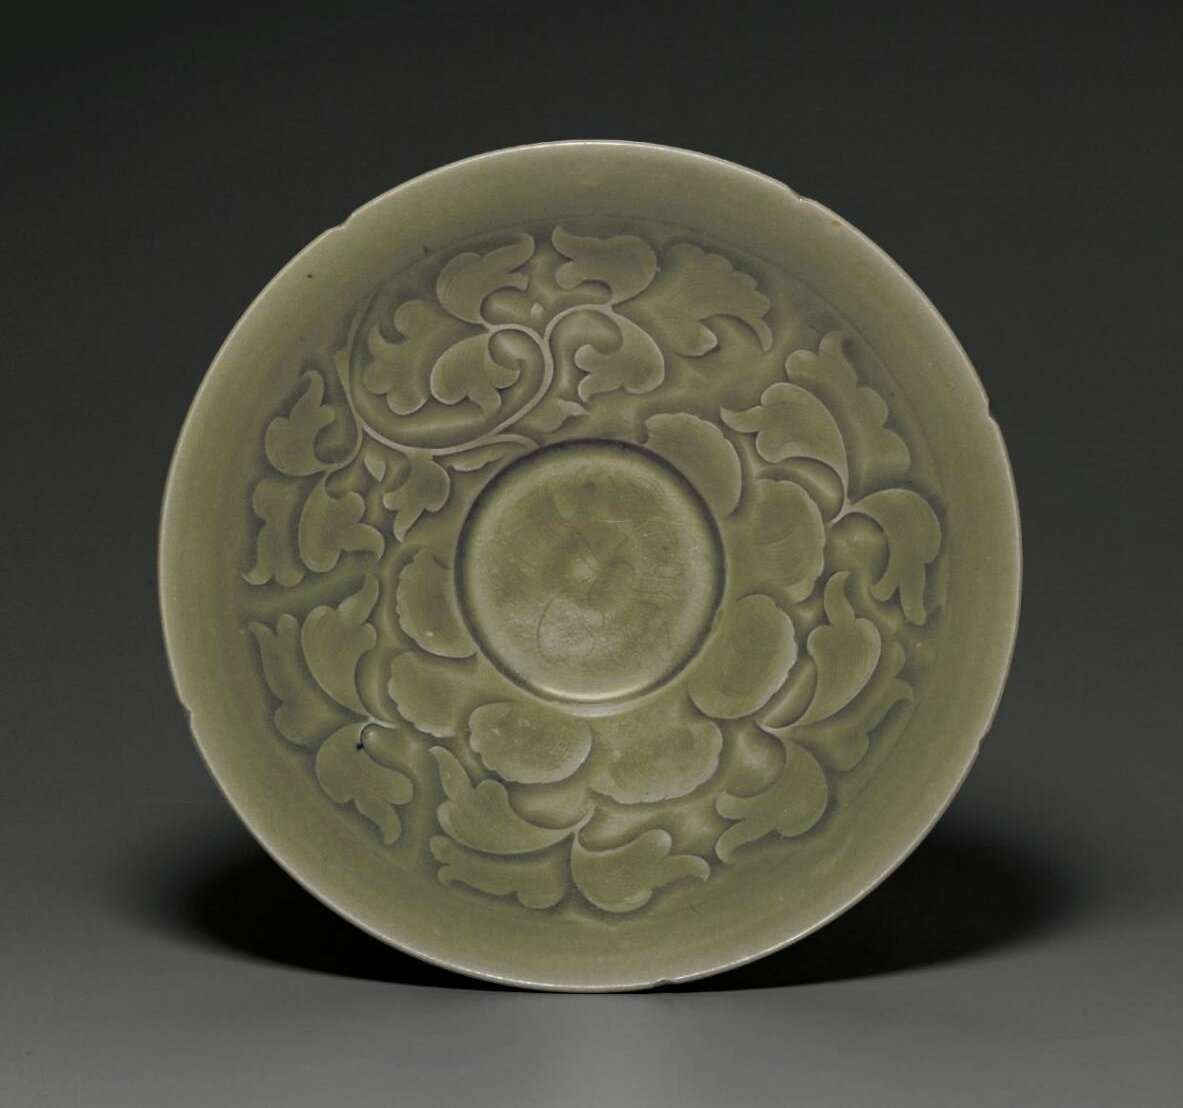 A rare carved Yaozhou 'Peony' bowl, Northern Song dynasty, 11th-12th century